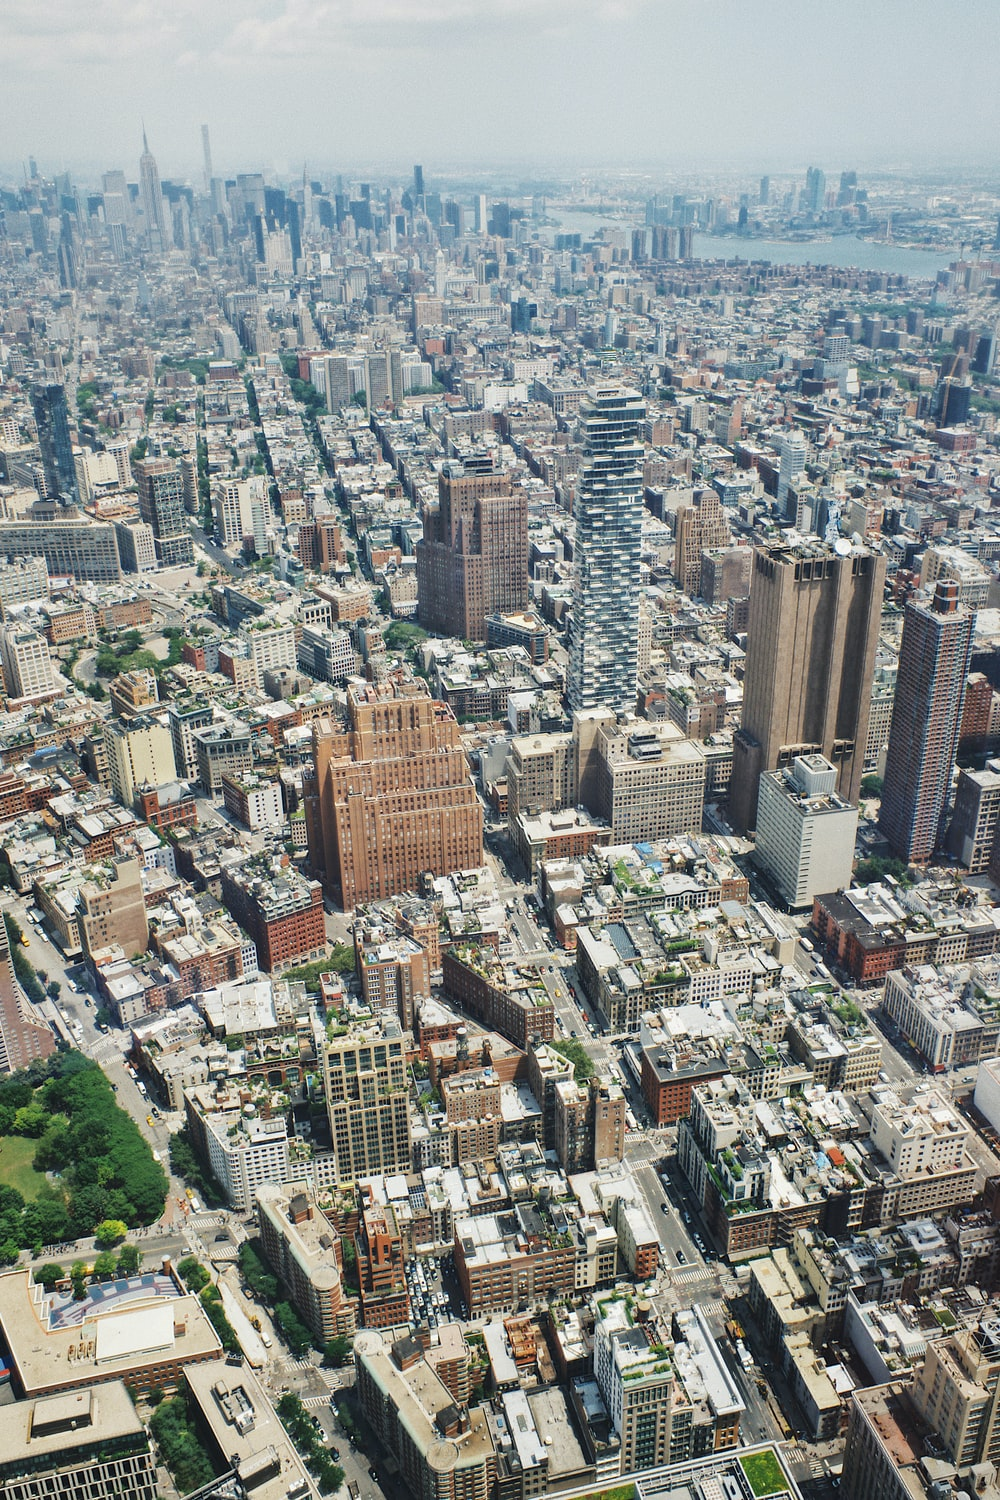 aerial view of city during daytime